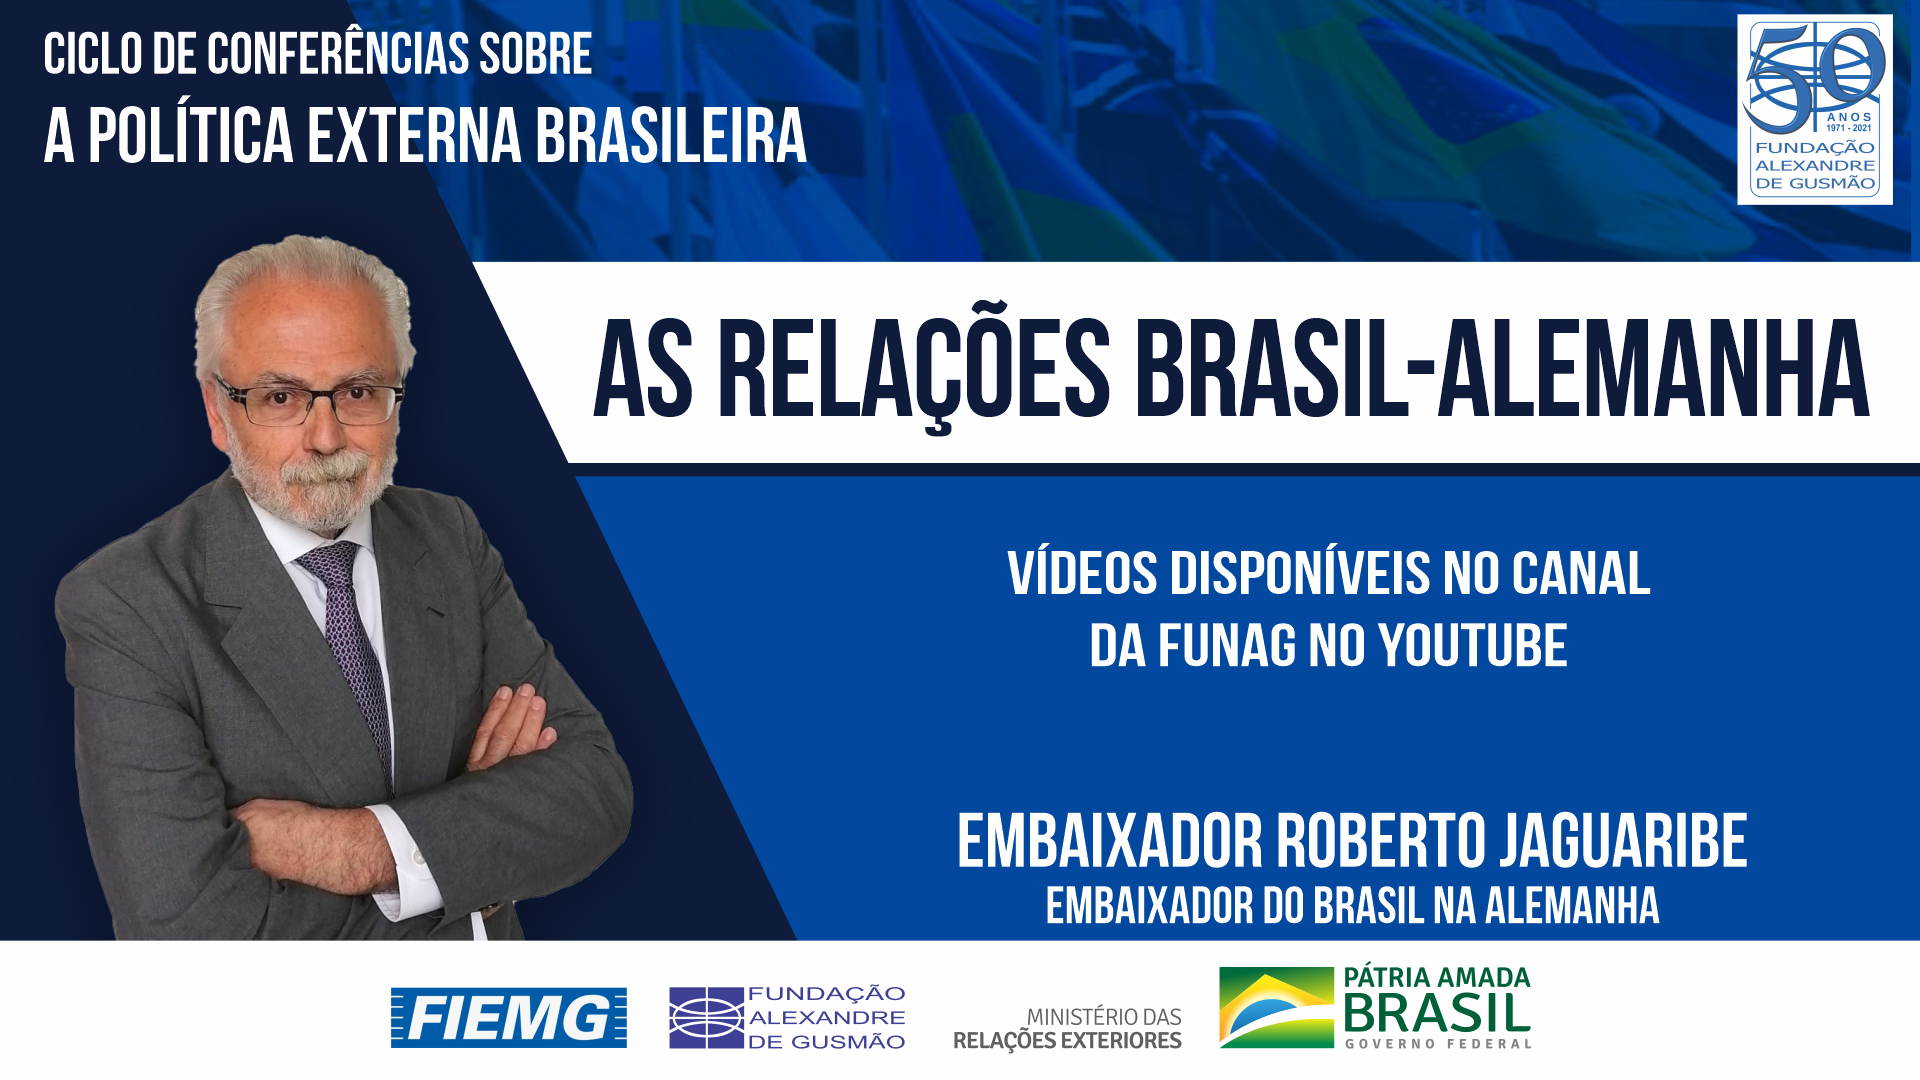 Watch the videos of the conference by Brazilian Ambassador to Germany, Roberto Jaguaribe